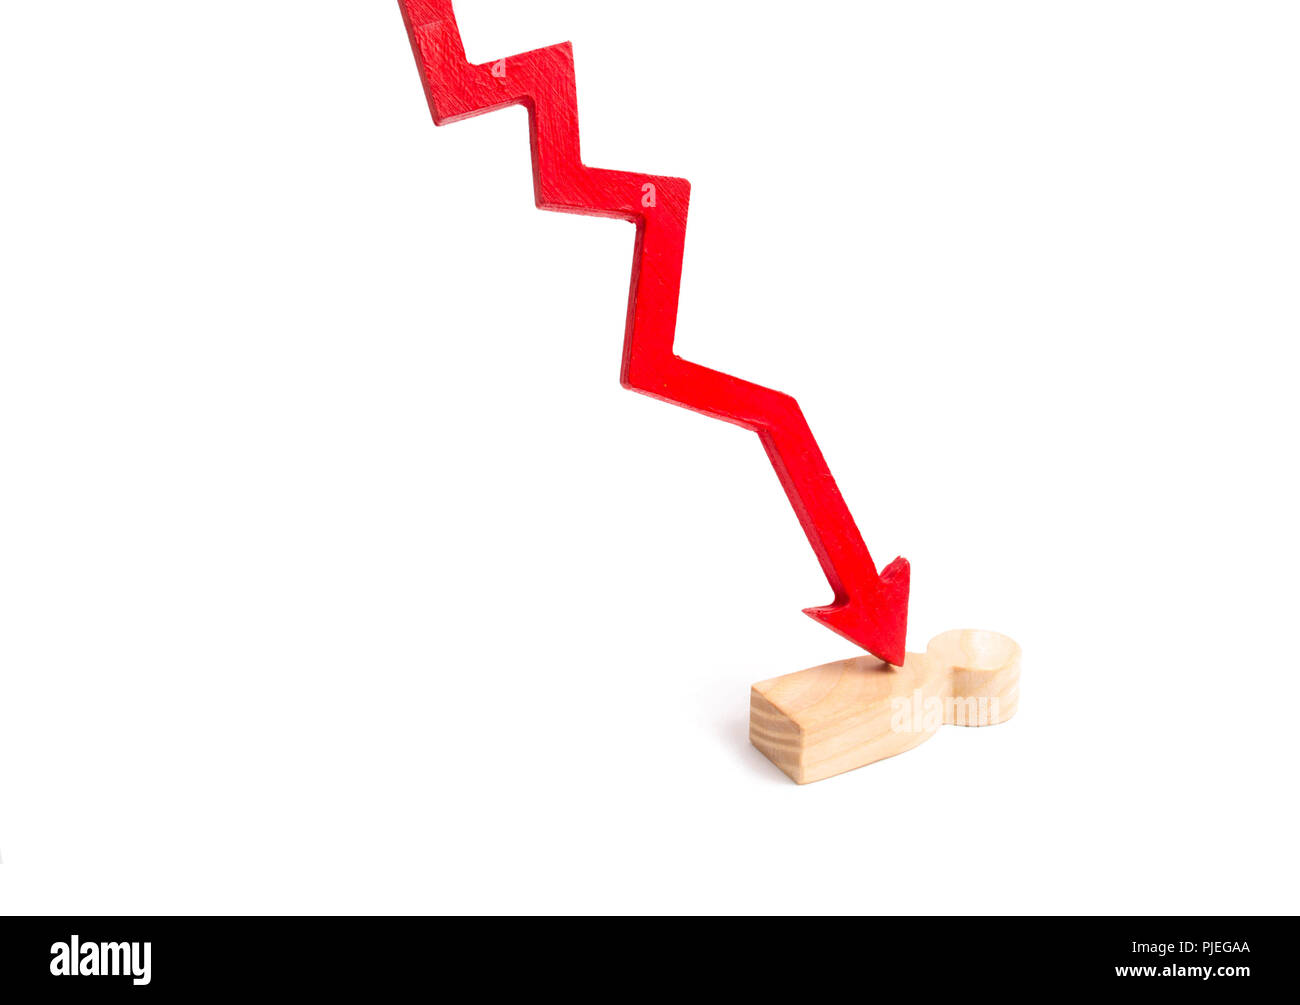 The red arrow cleaves the person. The concept of psychological pressure. Victim of the economic crisis, falling quotations and the collapse of the mar - Stock Image